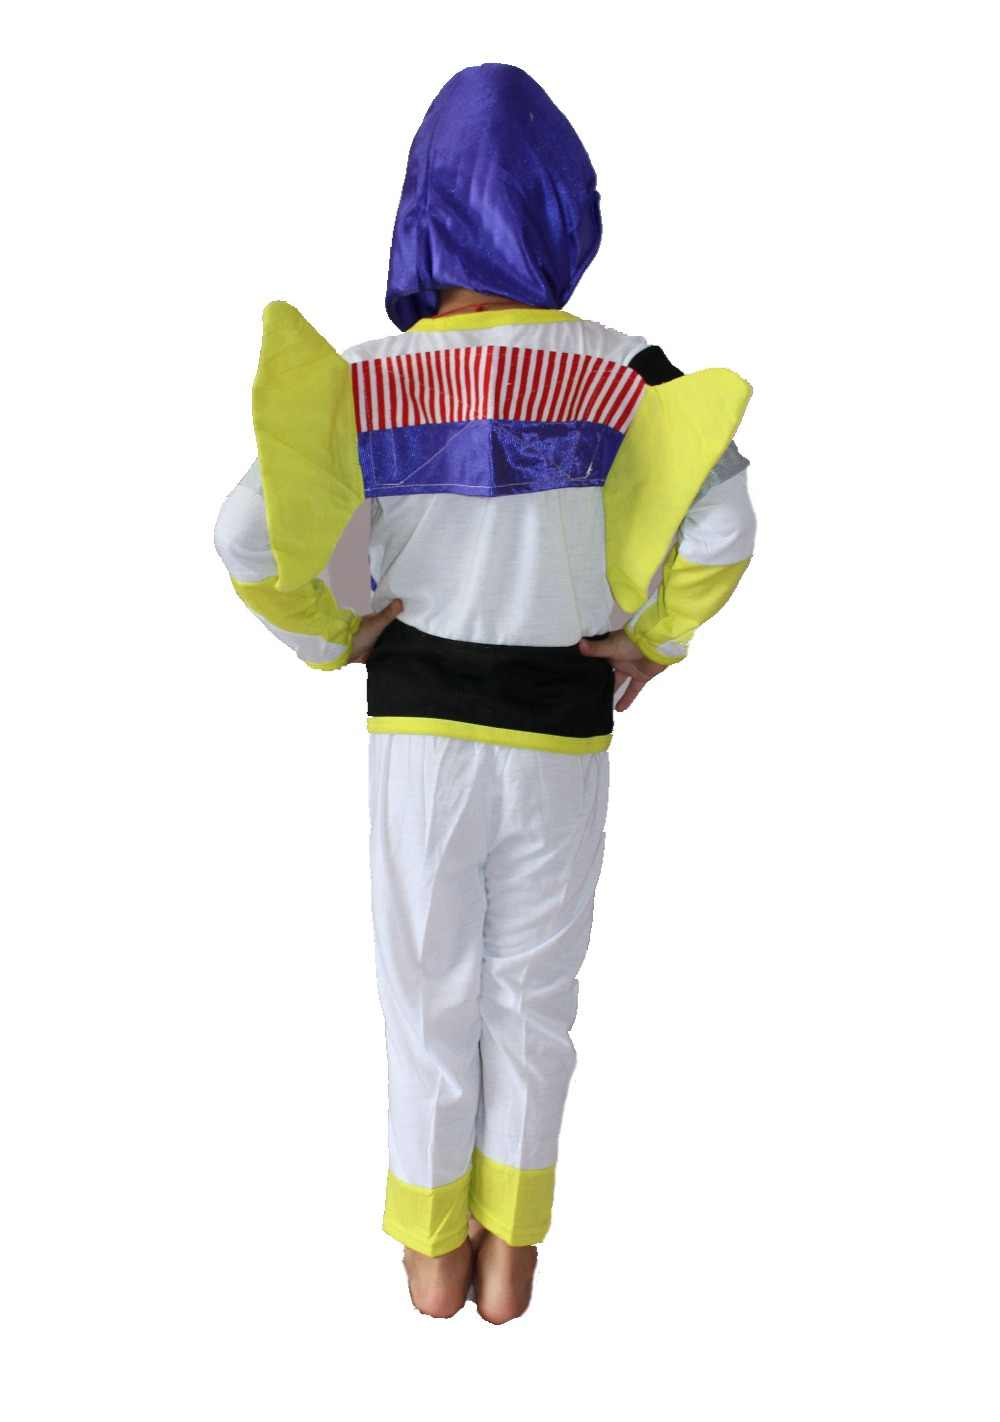 93d9a37926196 High cotton 3 -7 Years Halloween kids Toy Story Buzz Lightyear role playing  costumes Children's roll play garment &leisure wea